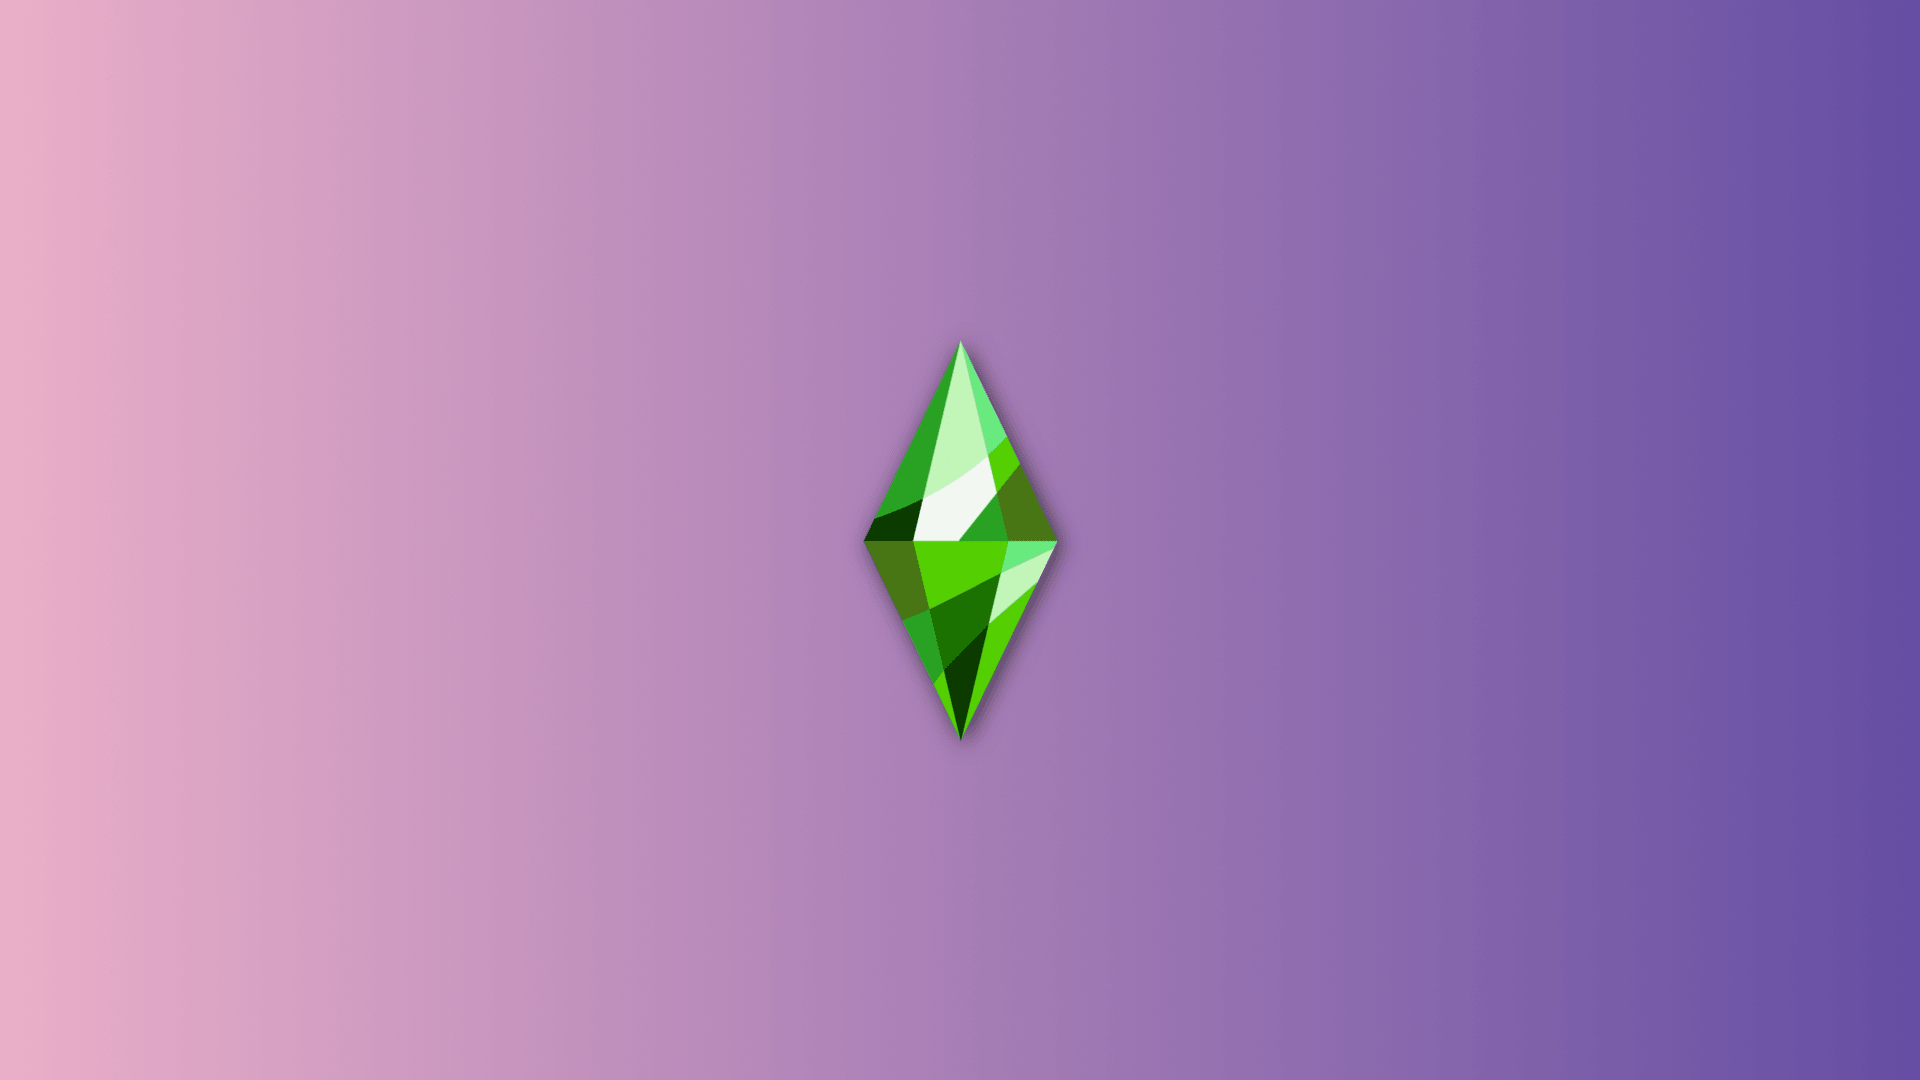 Sims Ultra Violet Wallpaper